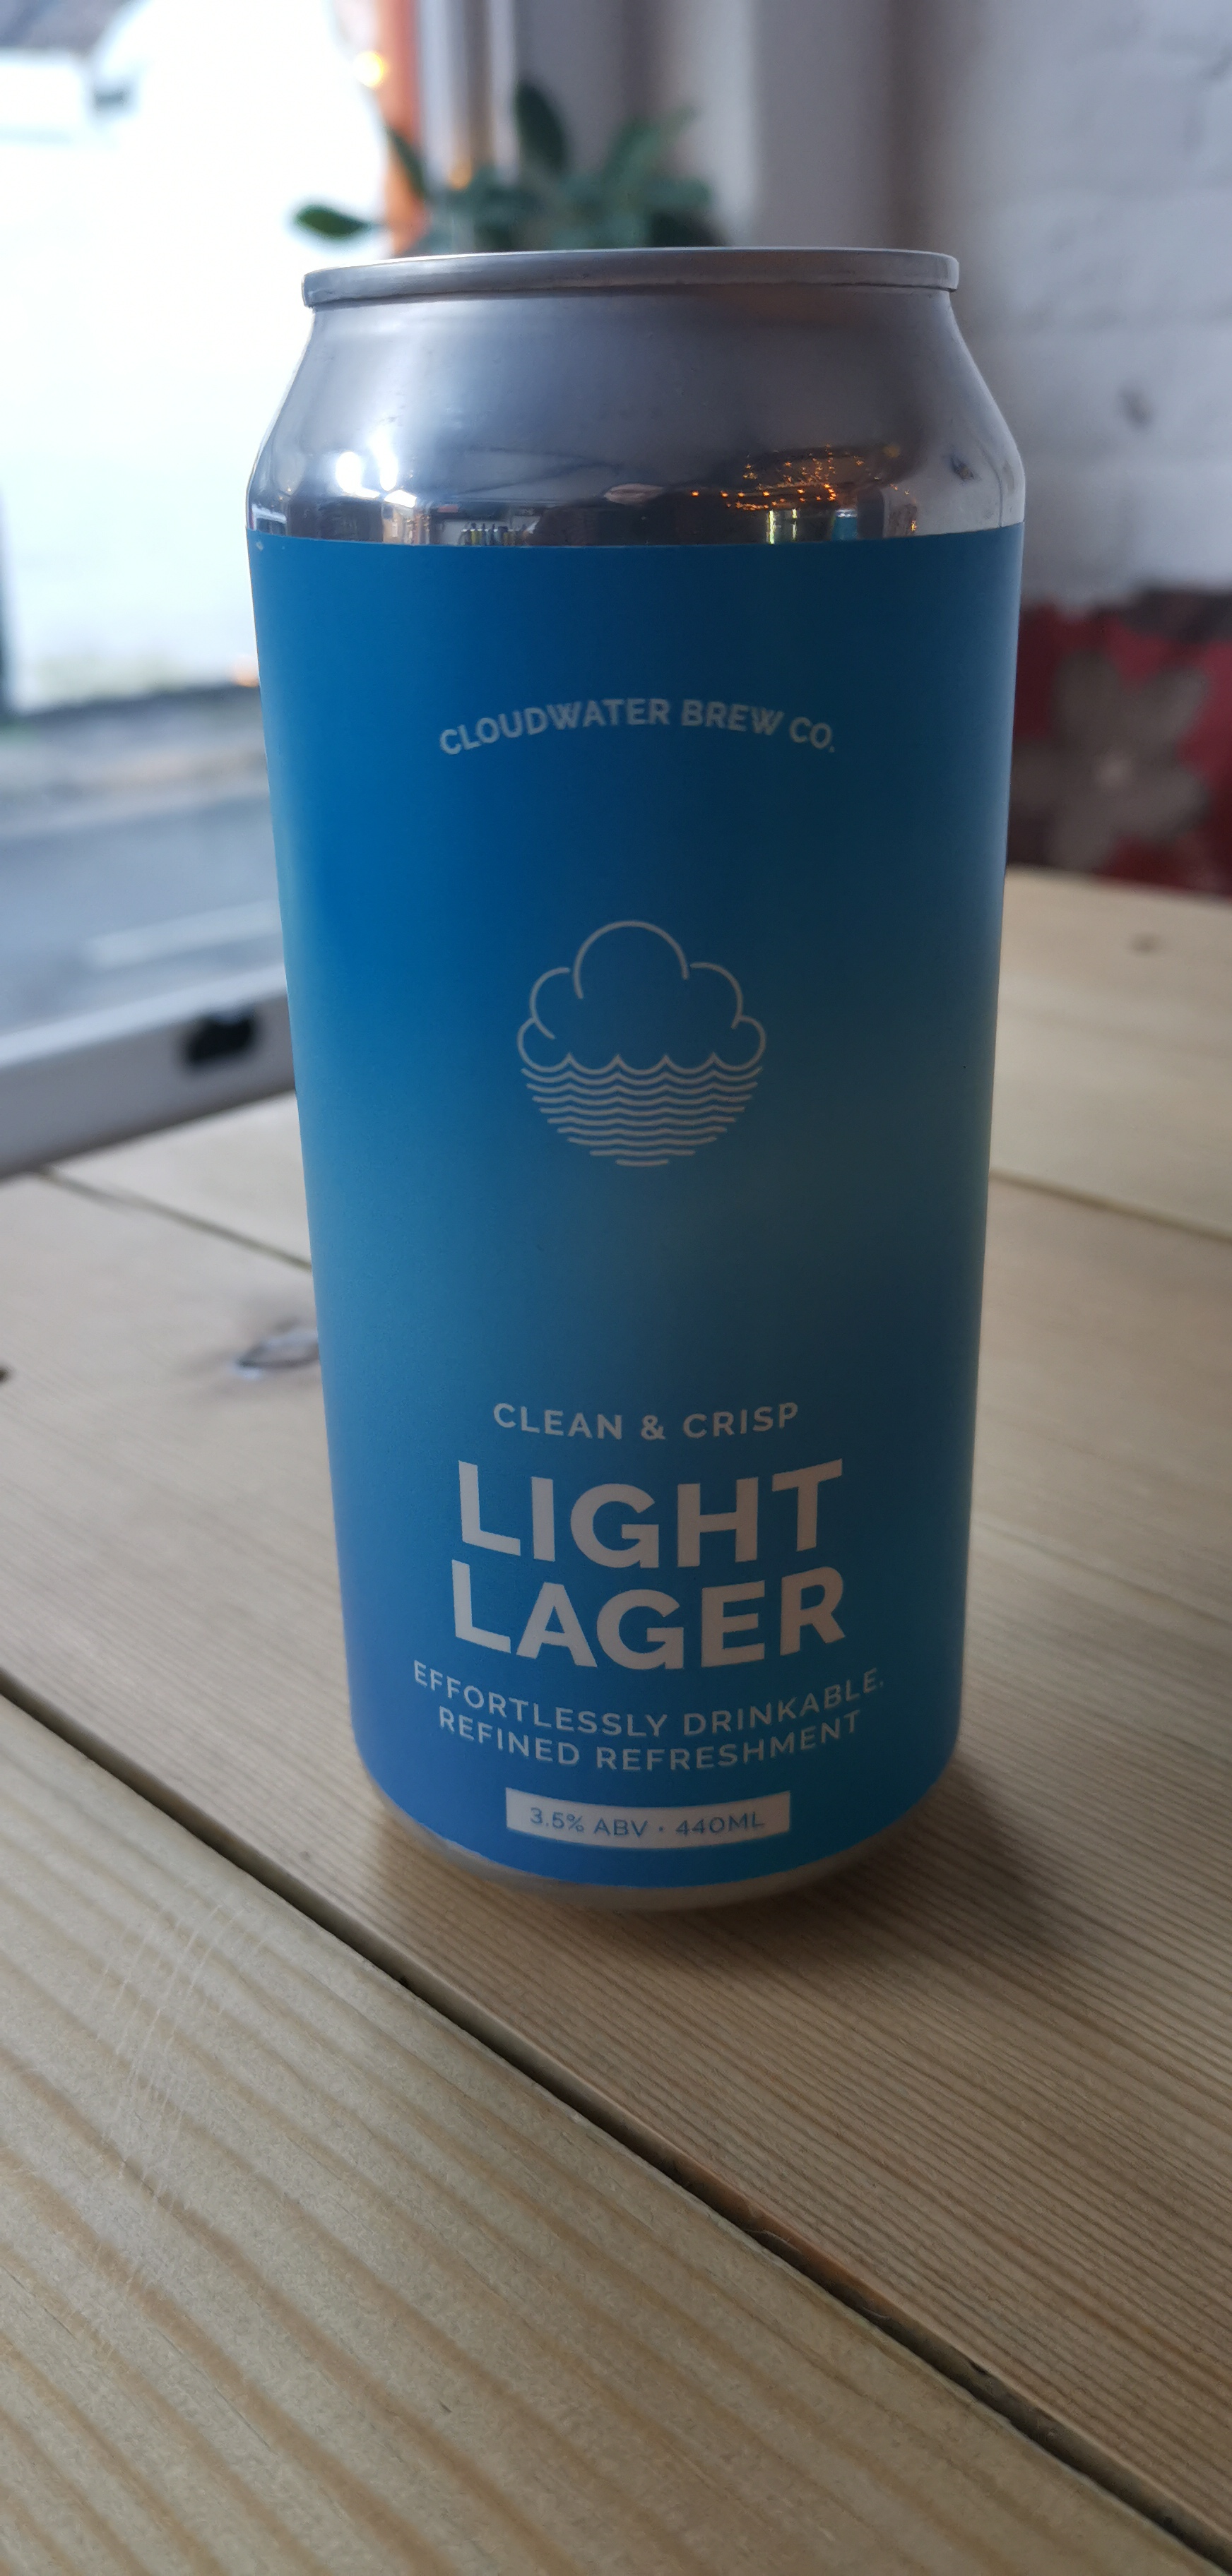 Cloudwater Brew Co. - Light Lager (3.5% Clean & Crisp Lager)